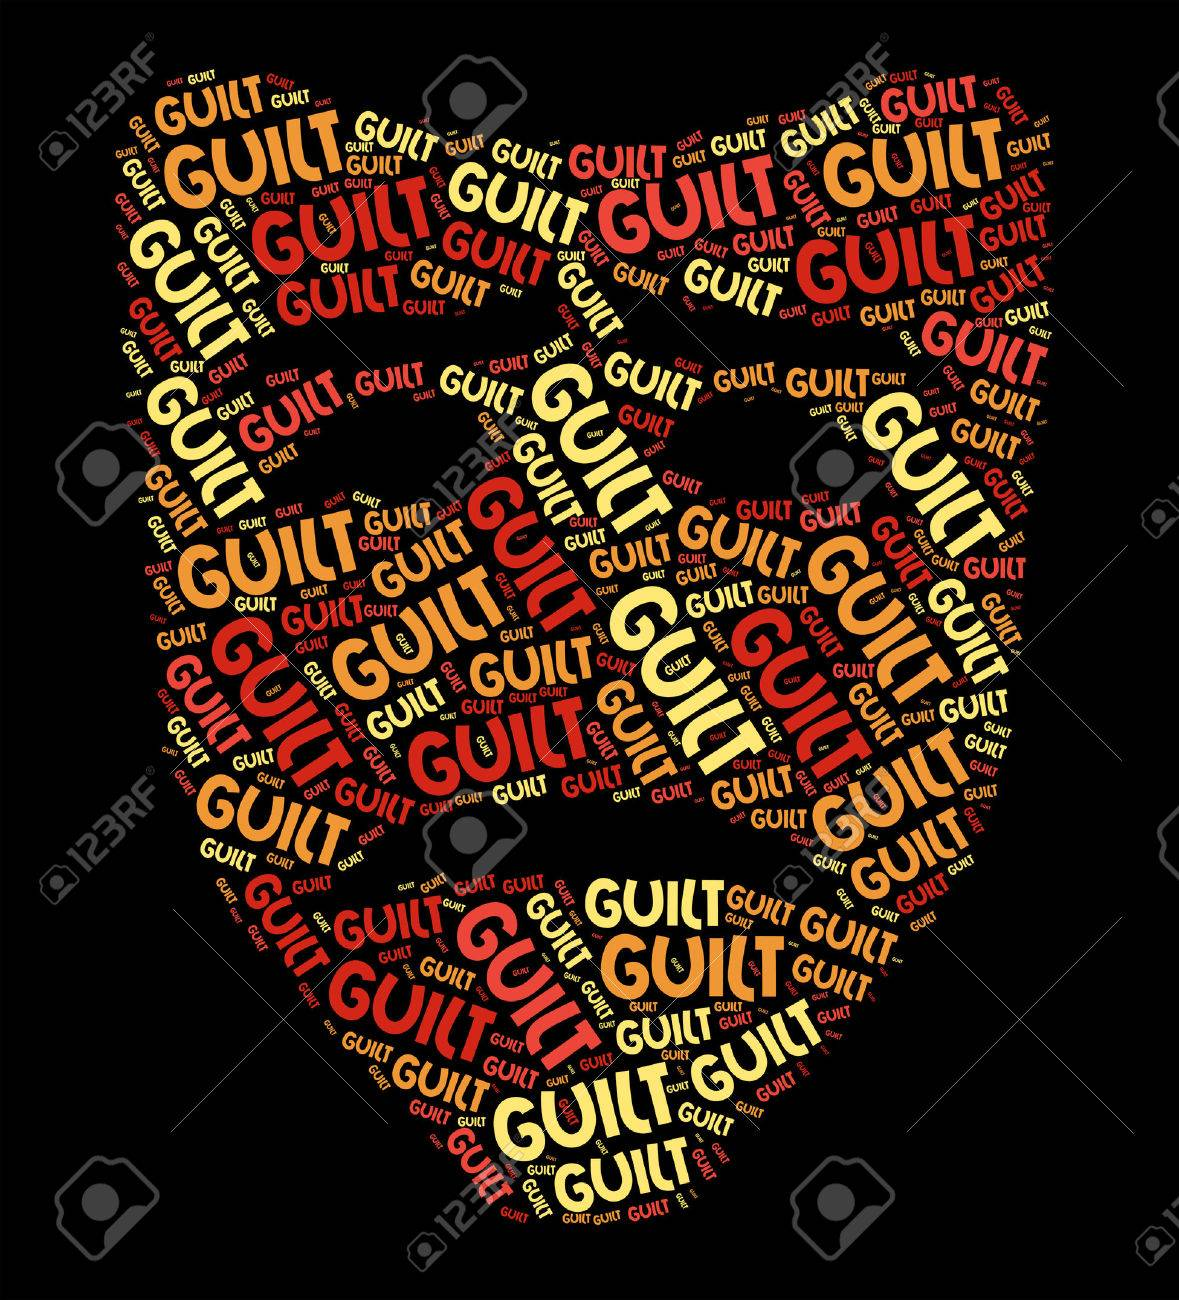 Guilt Word Representing Guilty Feeling And Words - 46111364